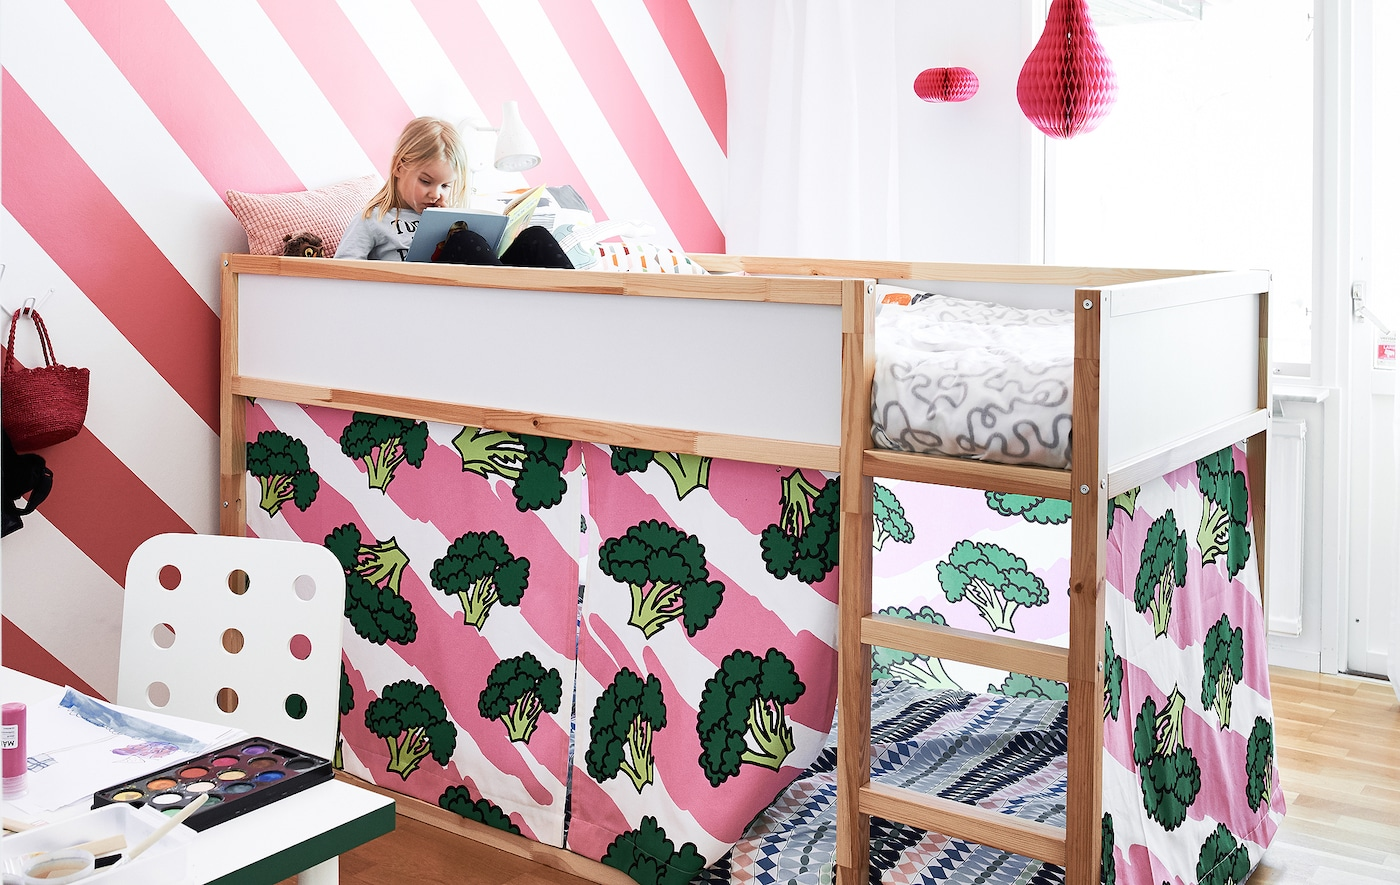 Henrik gave his daughter's room a fun makeover.